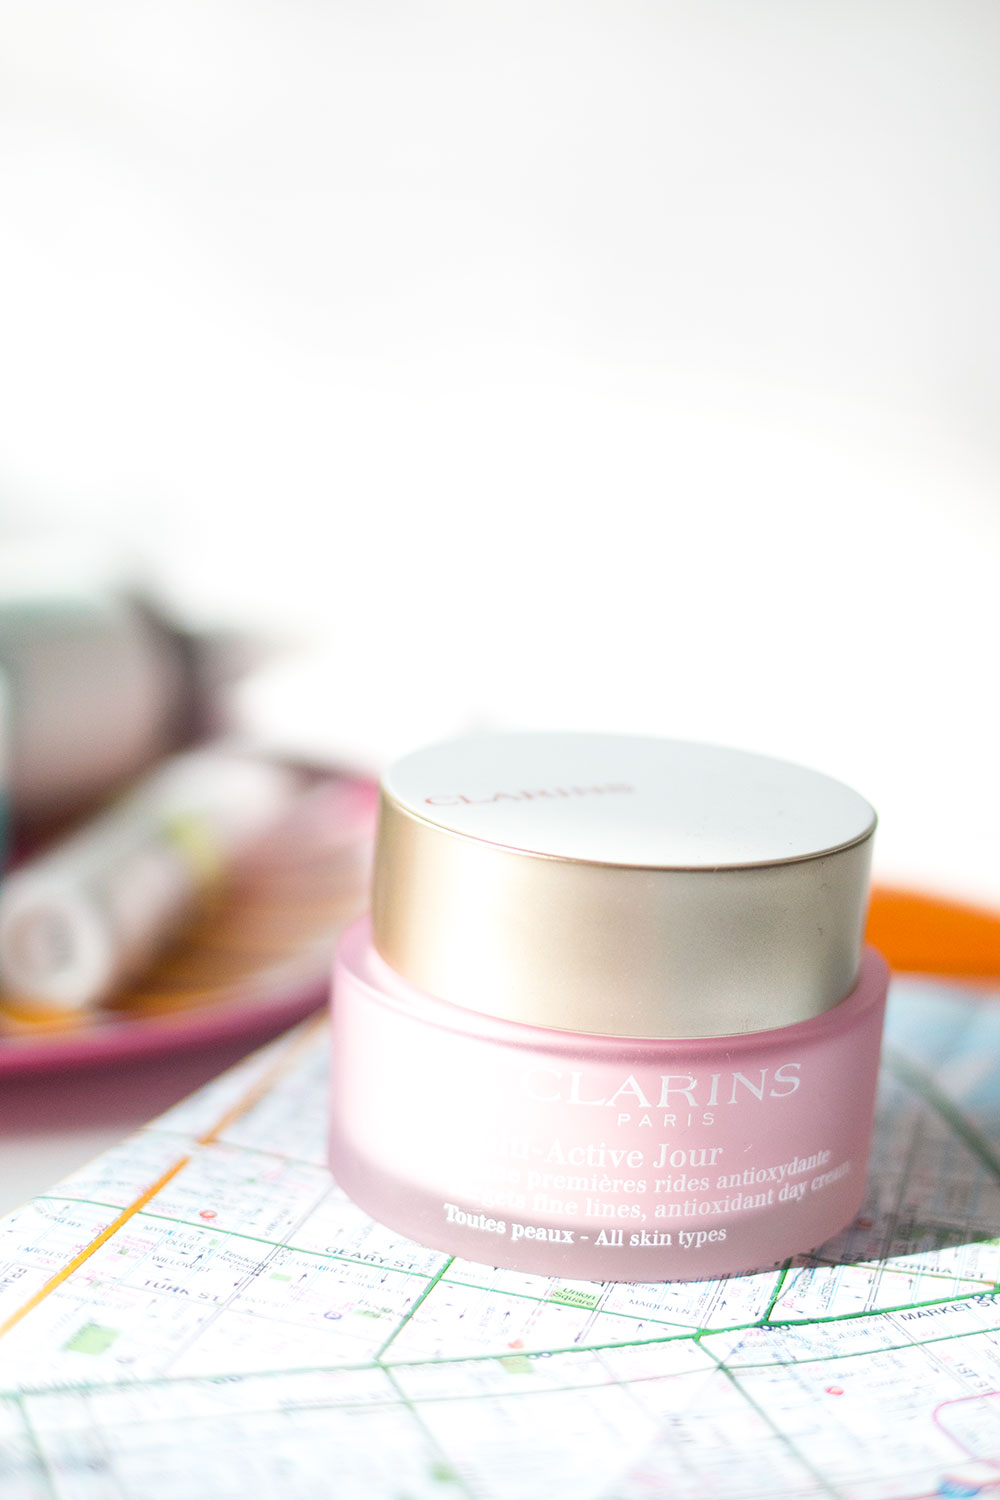 Clarins Multi Active Jour Day Cream Review // Hello Rigby Seattle Beauty Blog